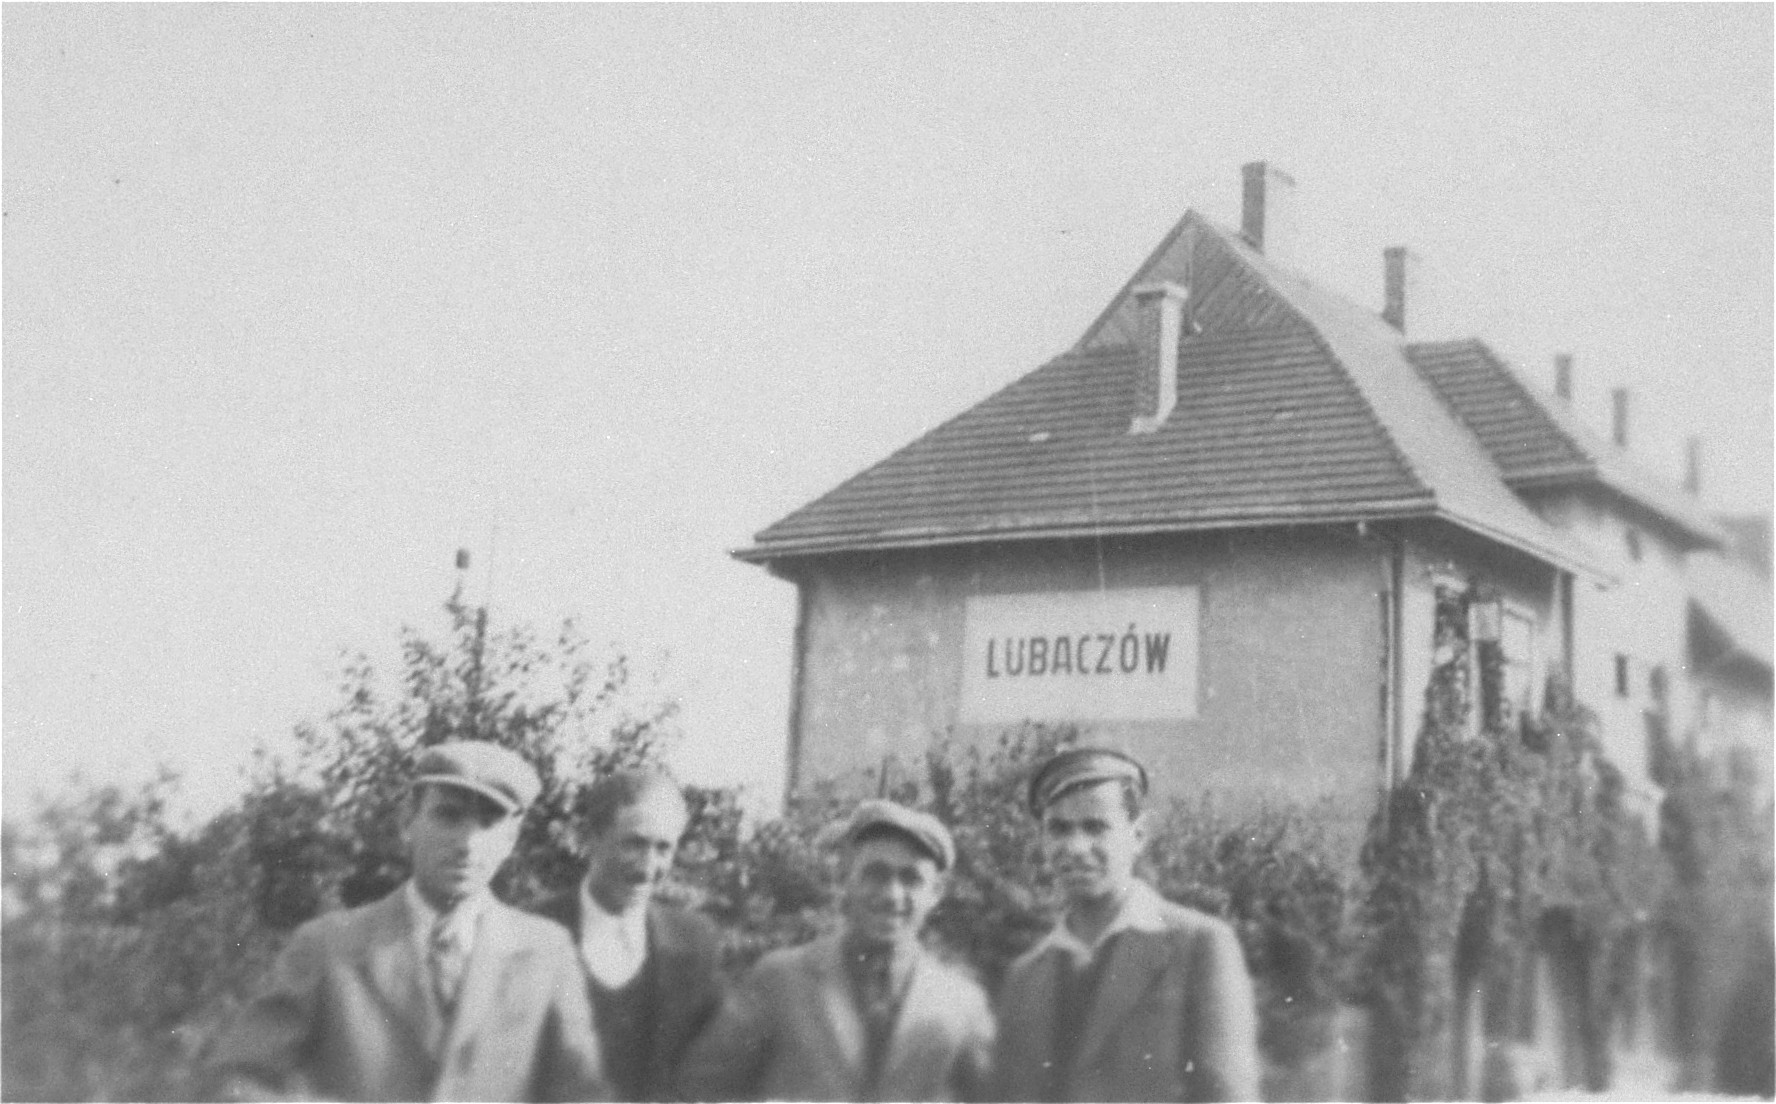 Joshua Heilman with three friends at the railroad station in Lubaczow.